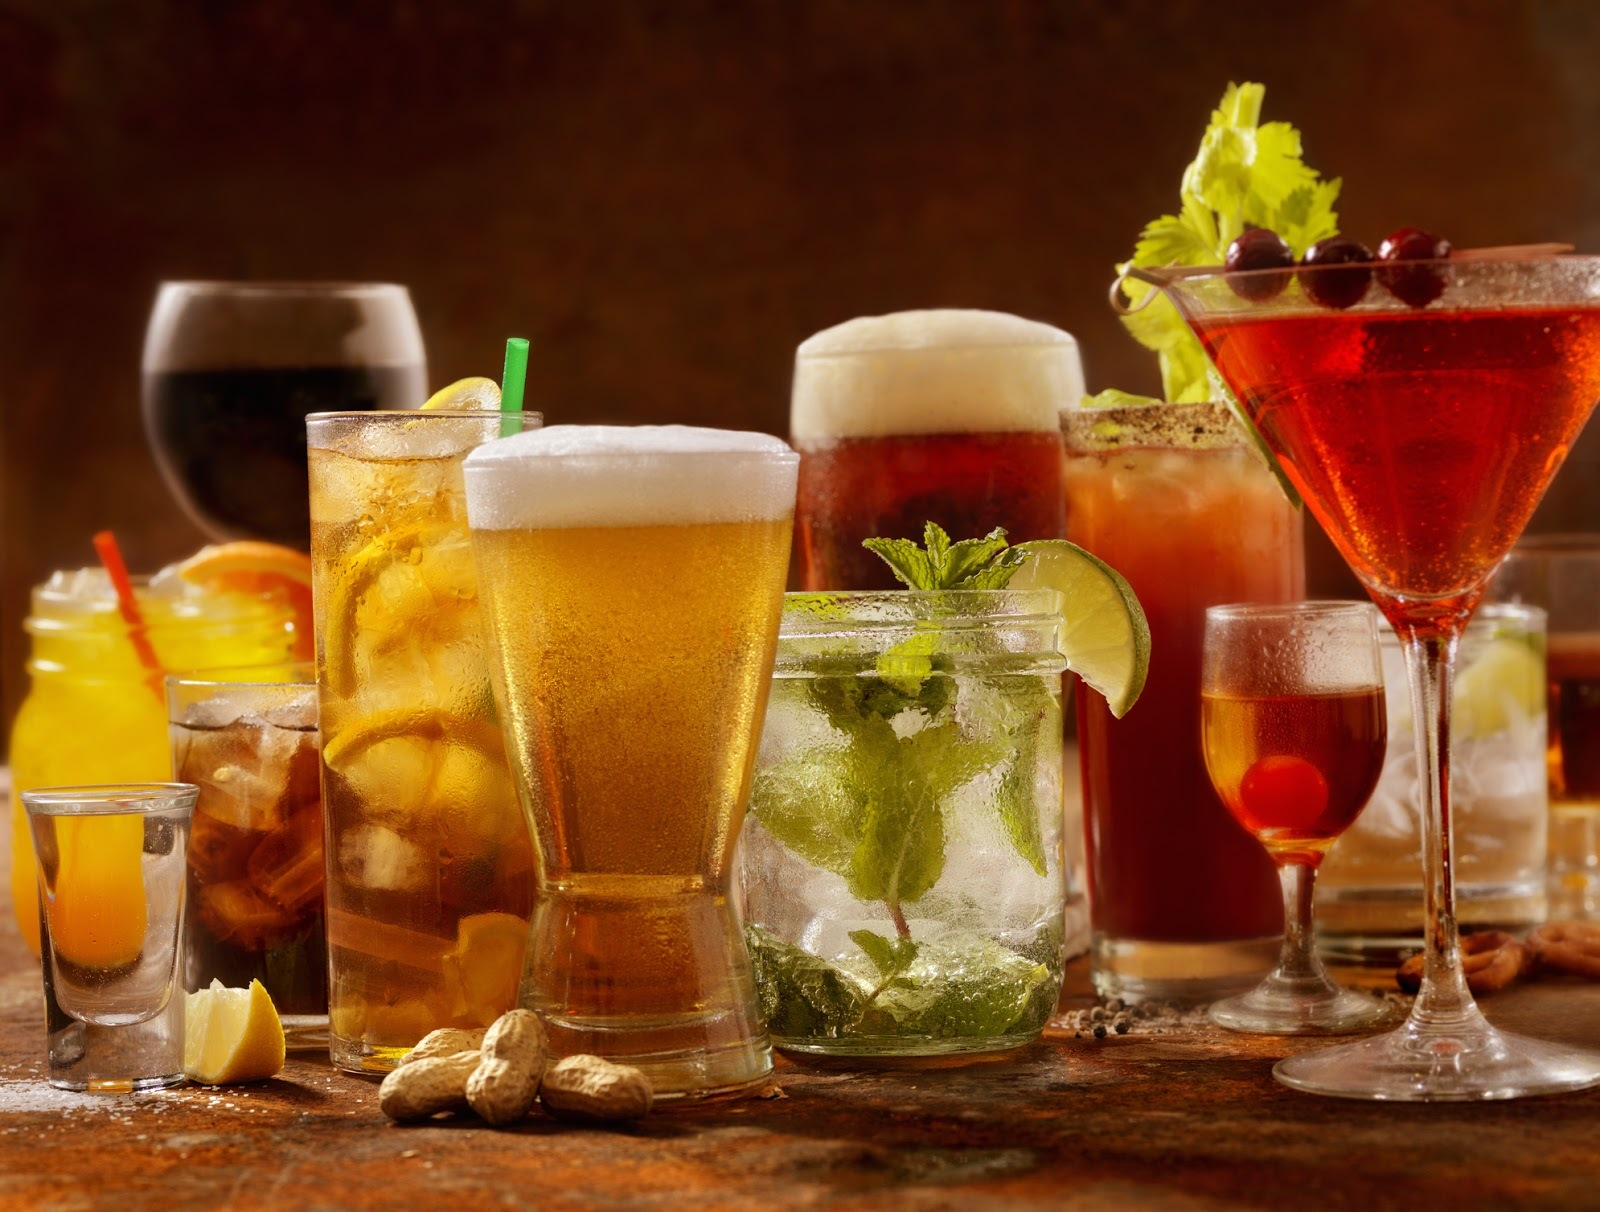 assortment of alcoholic beverages